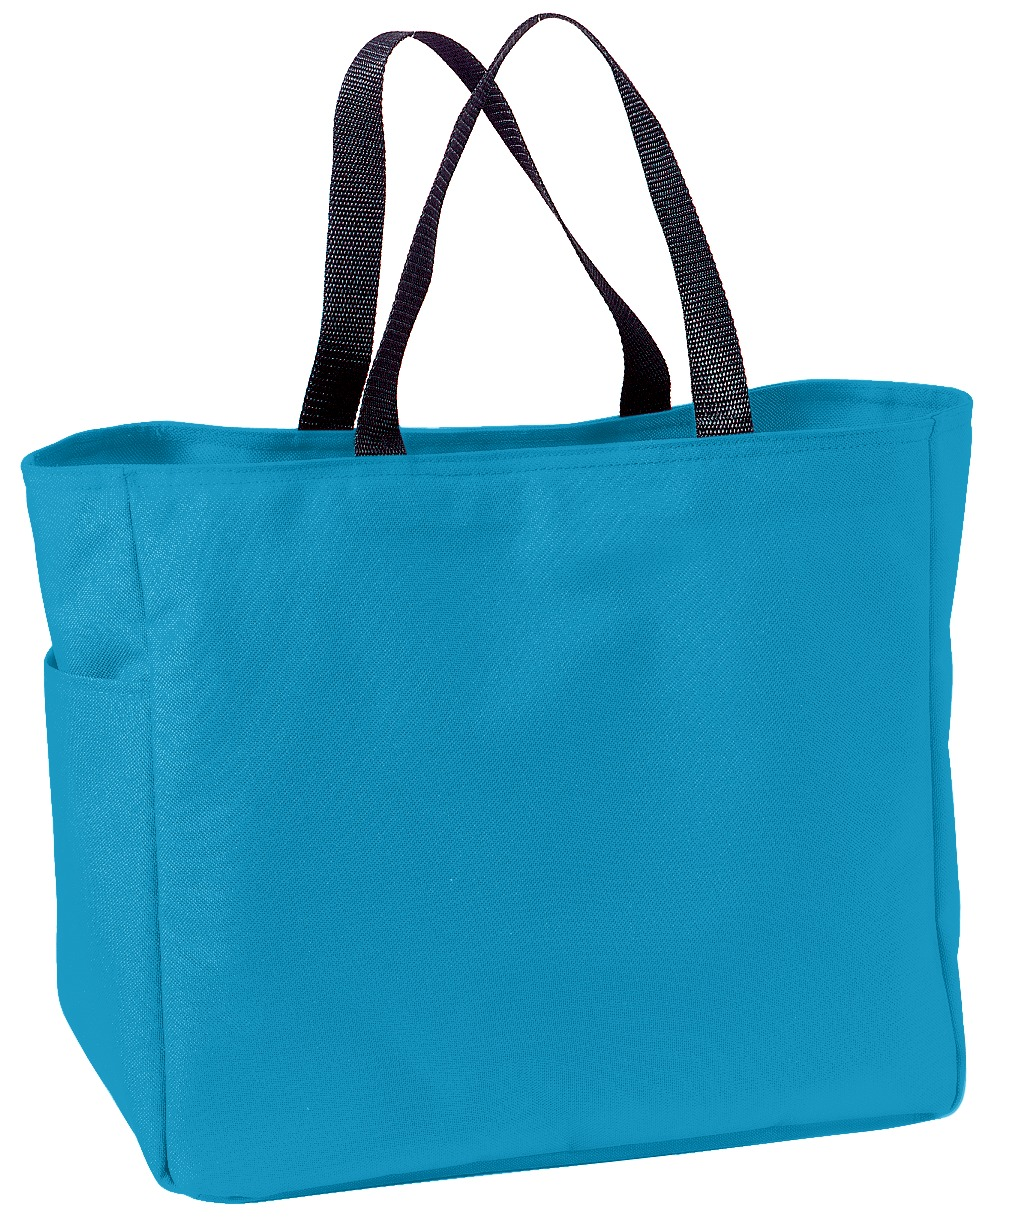 Port Authority ®  -  Essential Tote.  B0750 - Turquoise